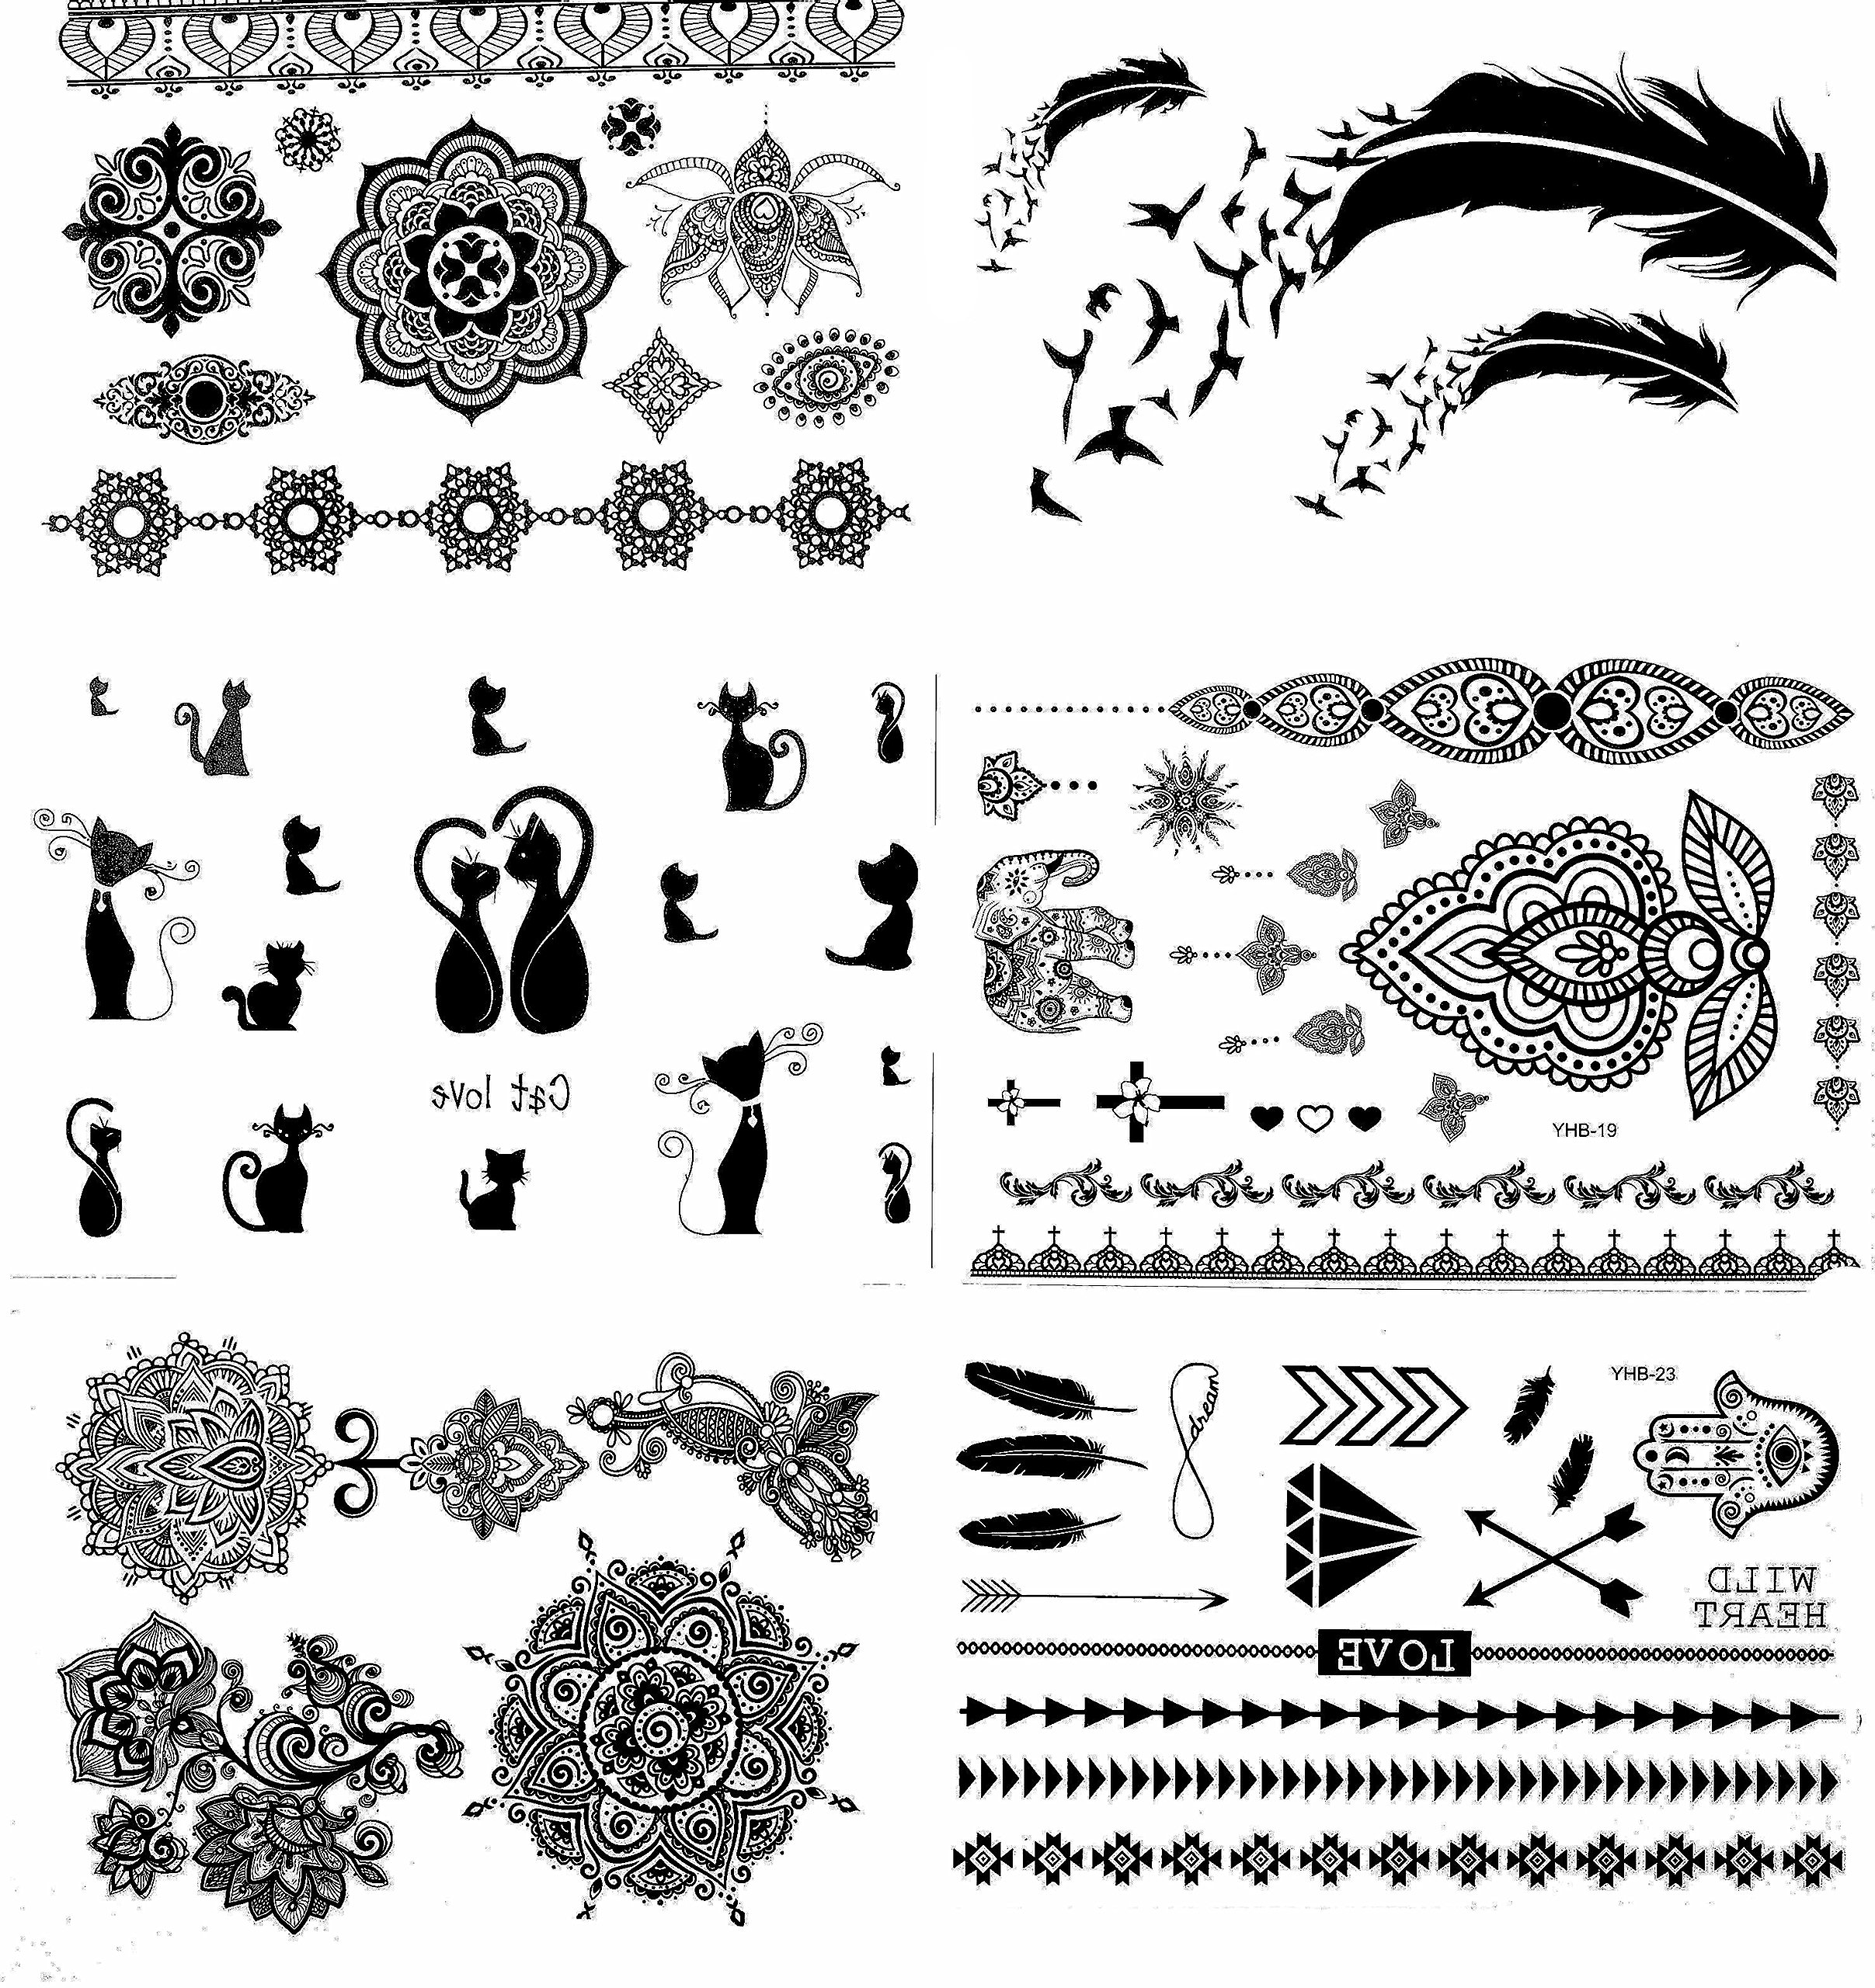 GILDED GIRL Henna Tattoo (6 Sheets) Body Paints Temporary Tattoo Designs Feathers/Mandala/Cats/Lotus/Bracelet/Elephant/Birds and more by Gilded Girl